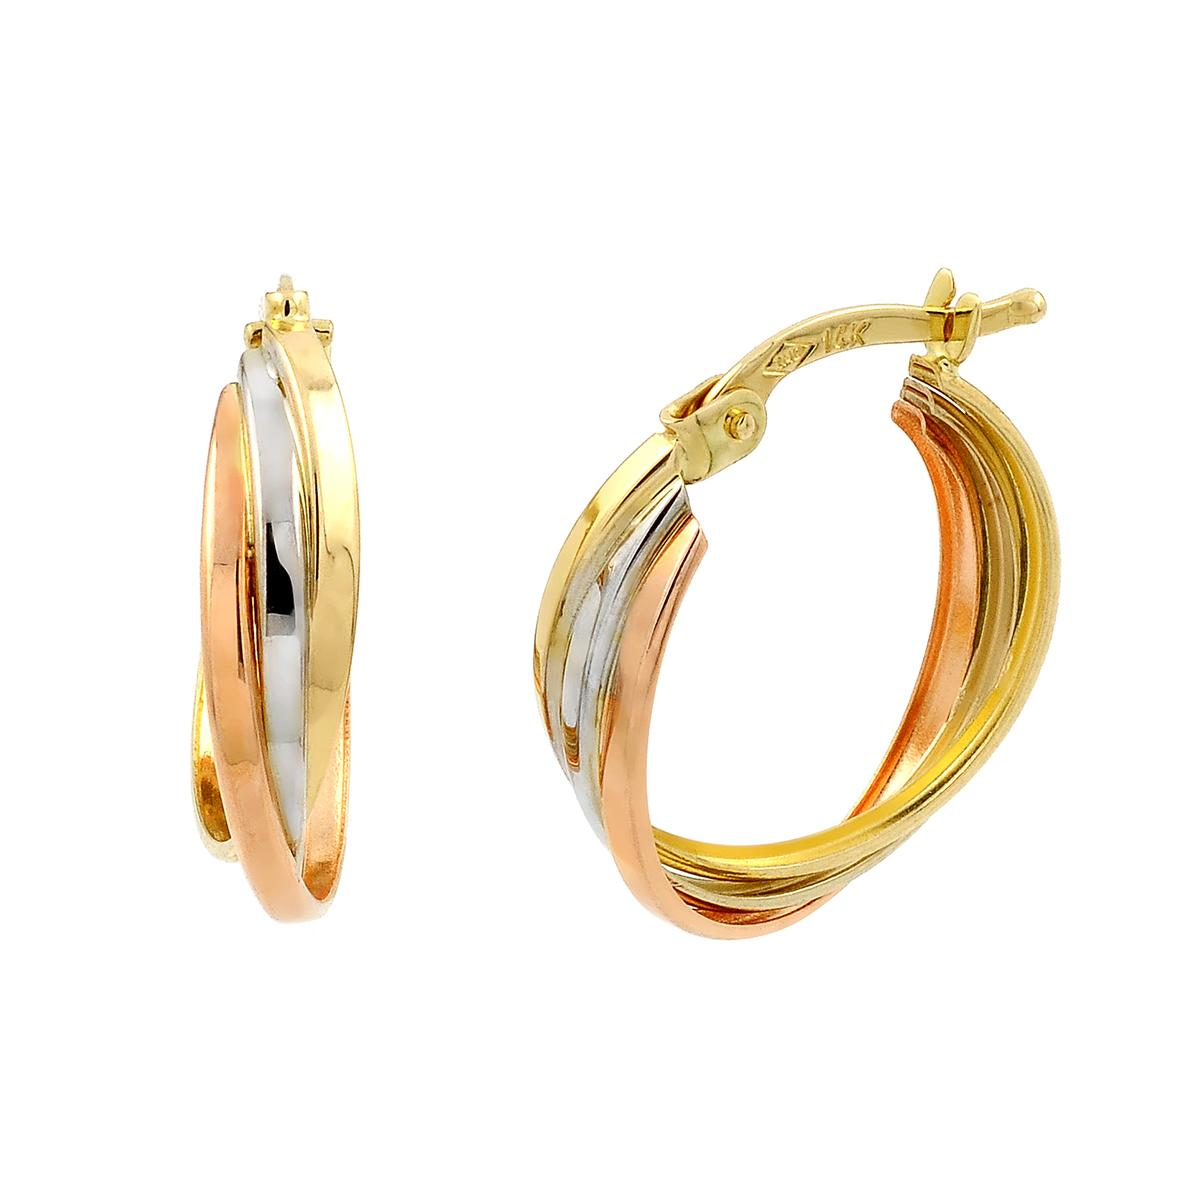 Elements Gold Twist Hoop Earrings - Gold Gold (Colour) pCcVS4Zd